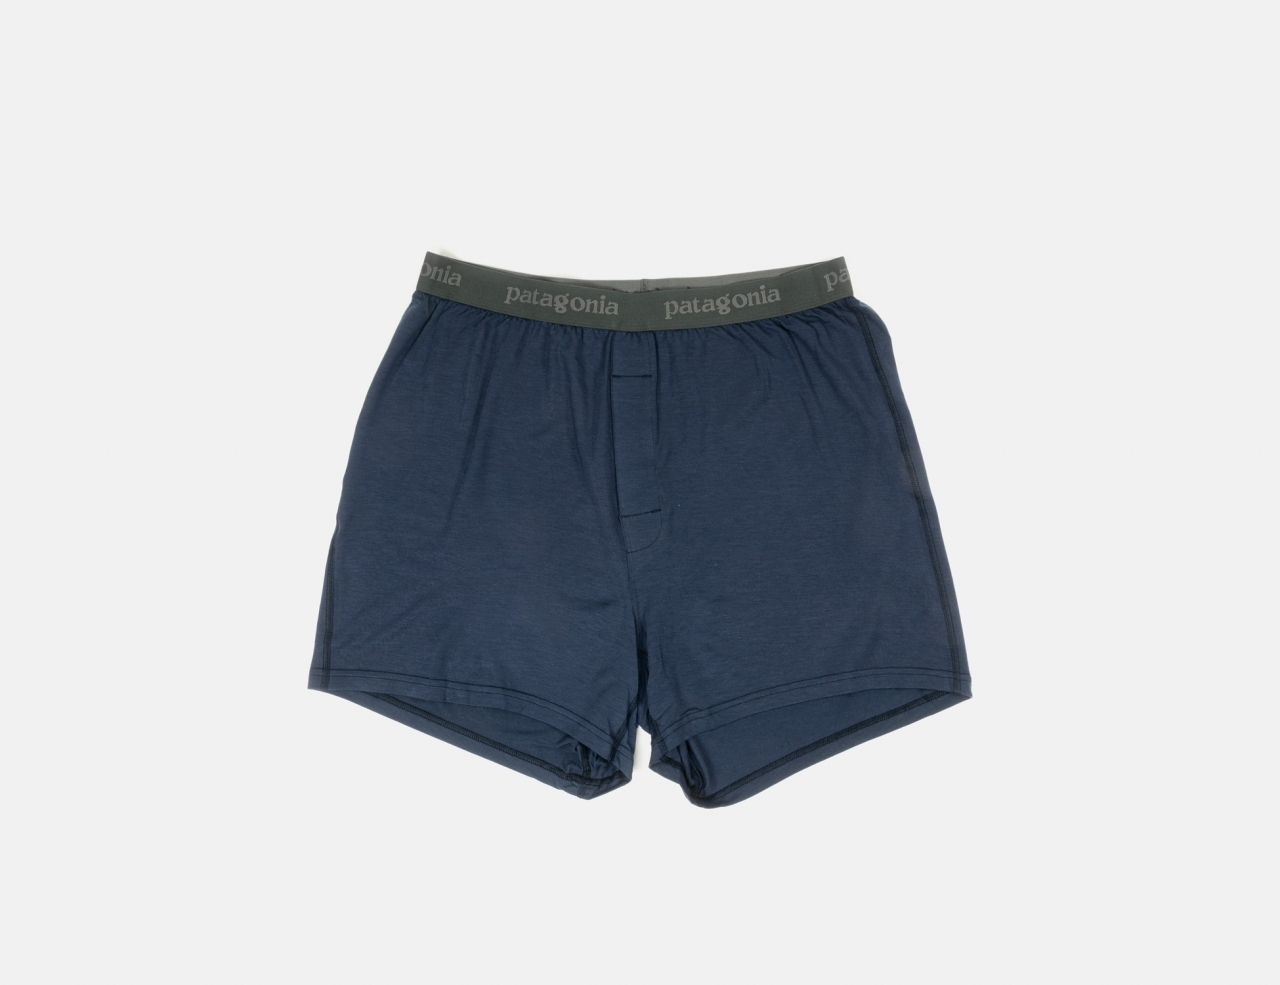 Patagonia Essential Boxer Shorts - New Navy